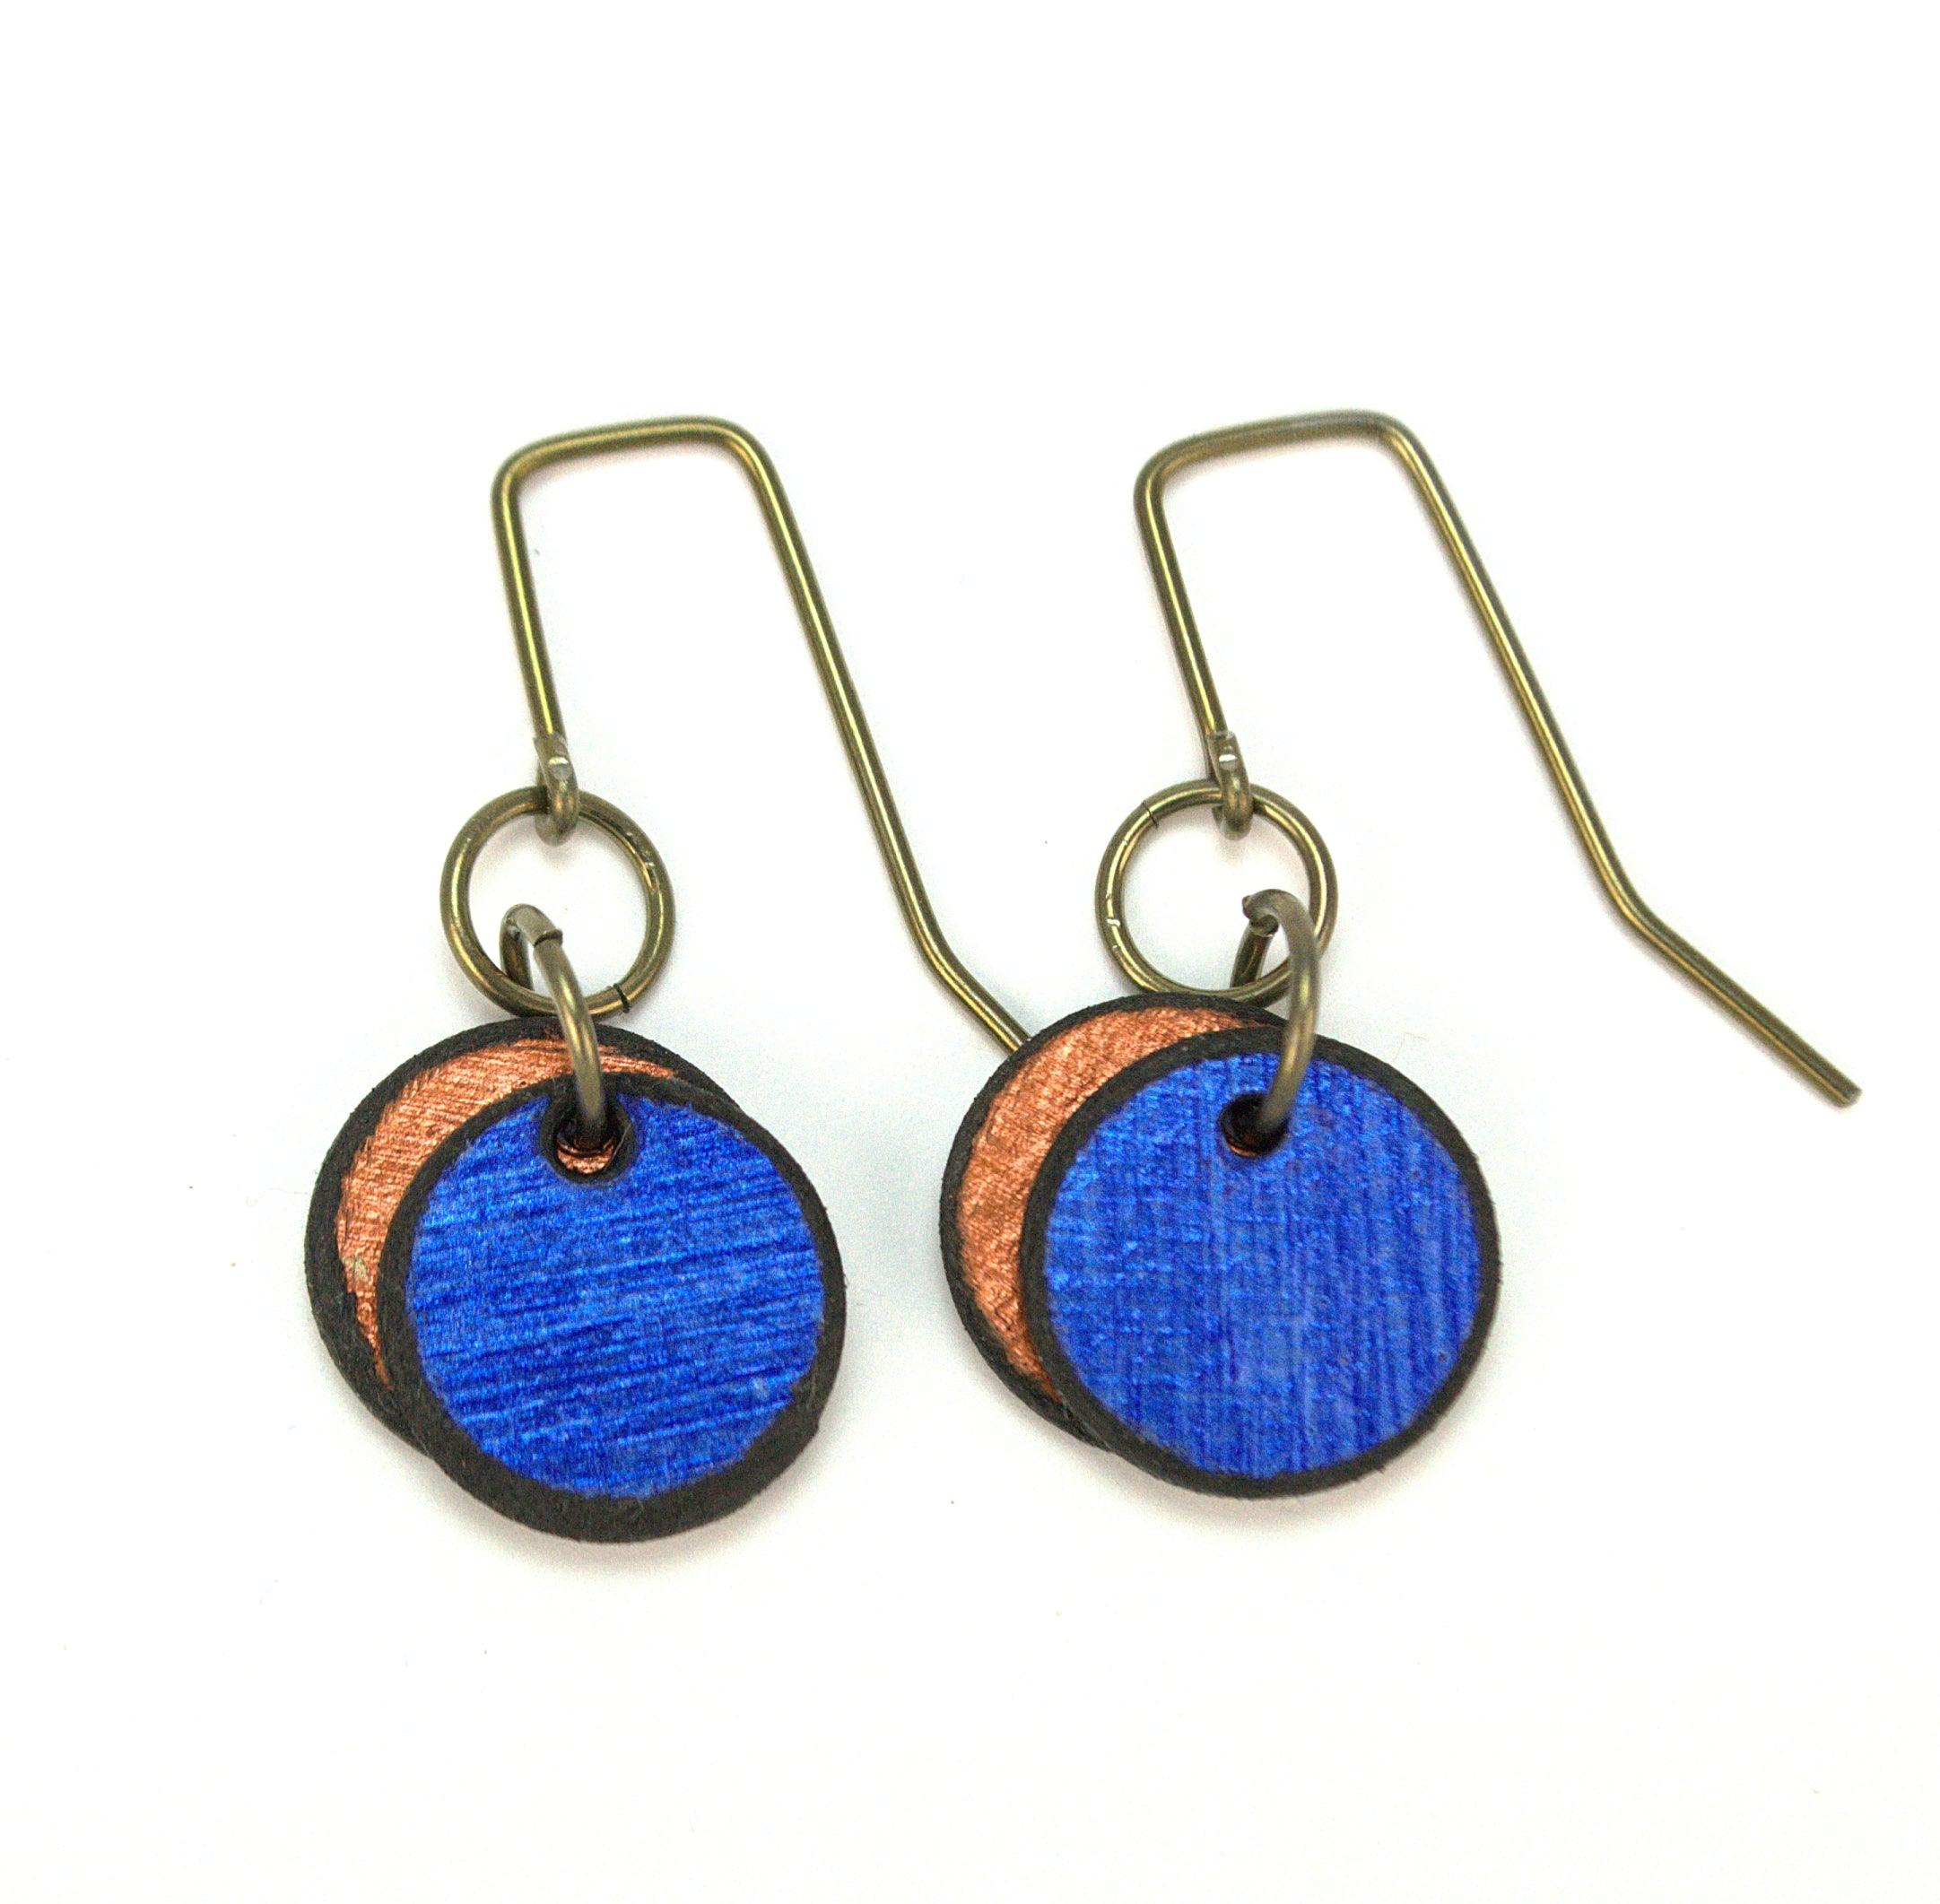 Sapphire double circle earrings made from rawhide, super lightweight